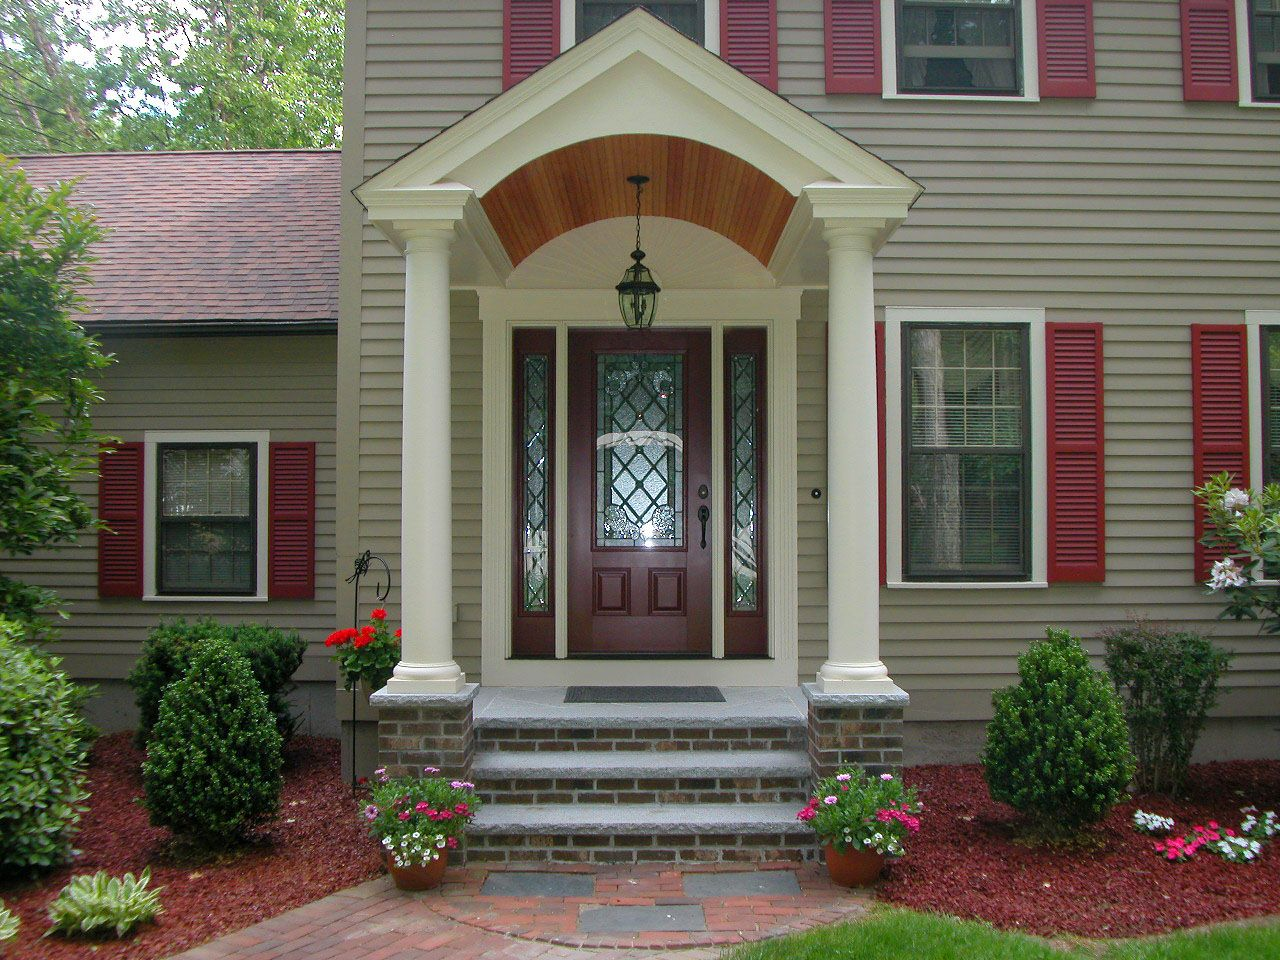 Best The Third Front Step Idea That Makes The Exterior Of Your Home Looks More Amazing Is Making 400 x 300